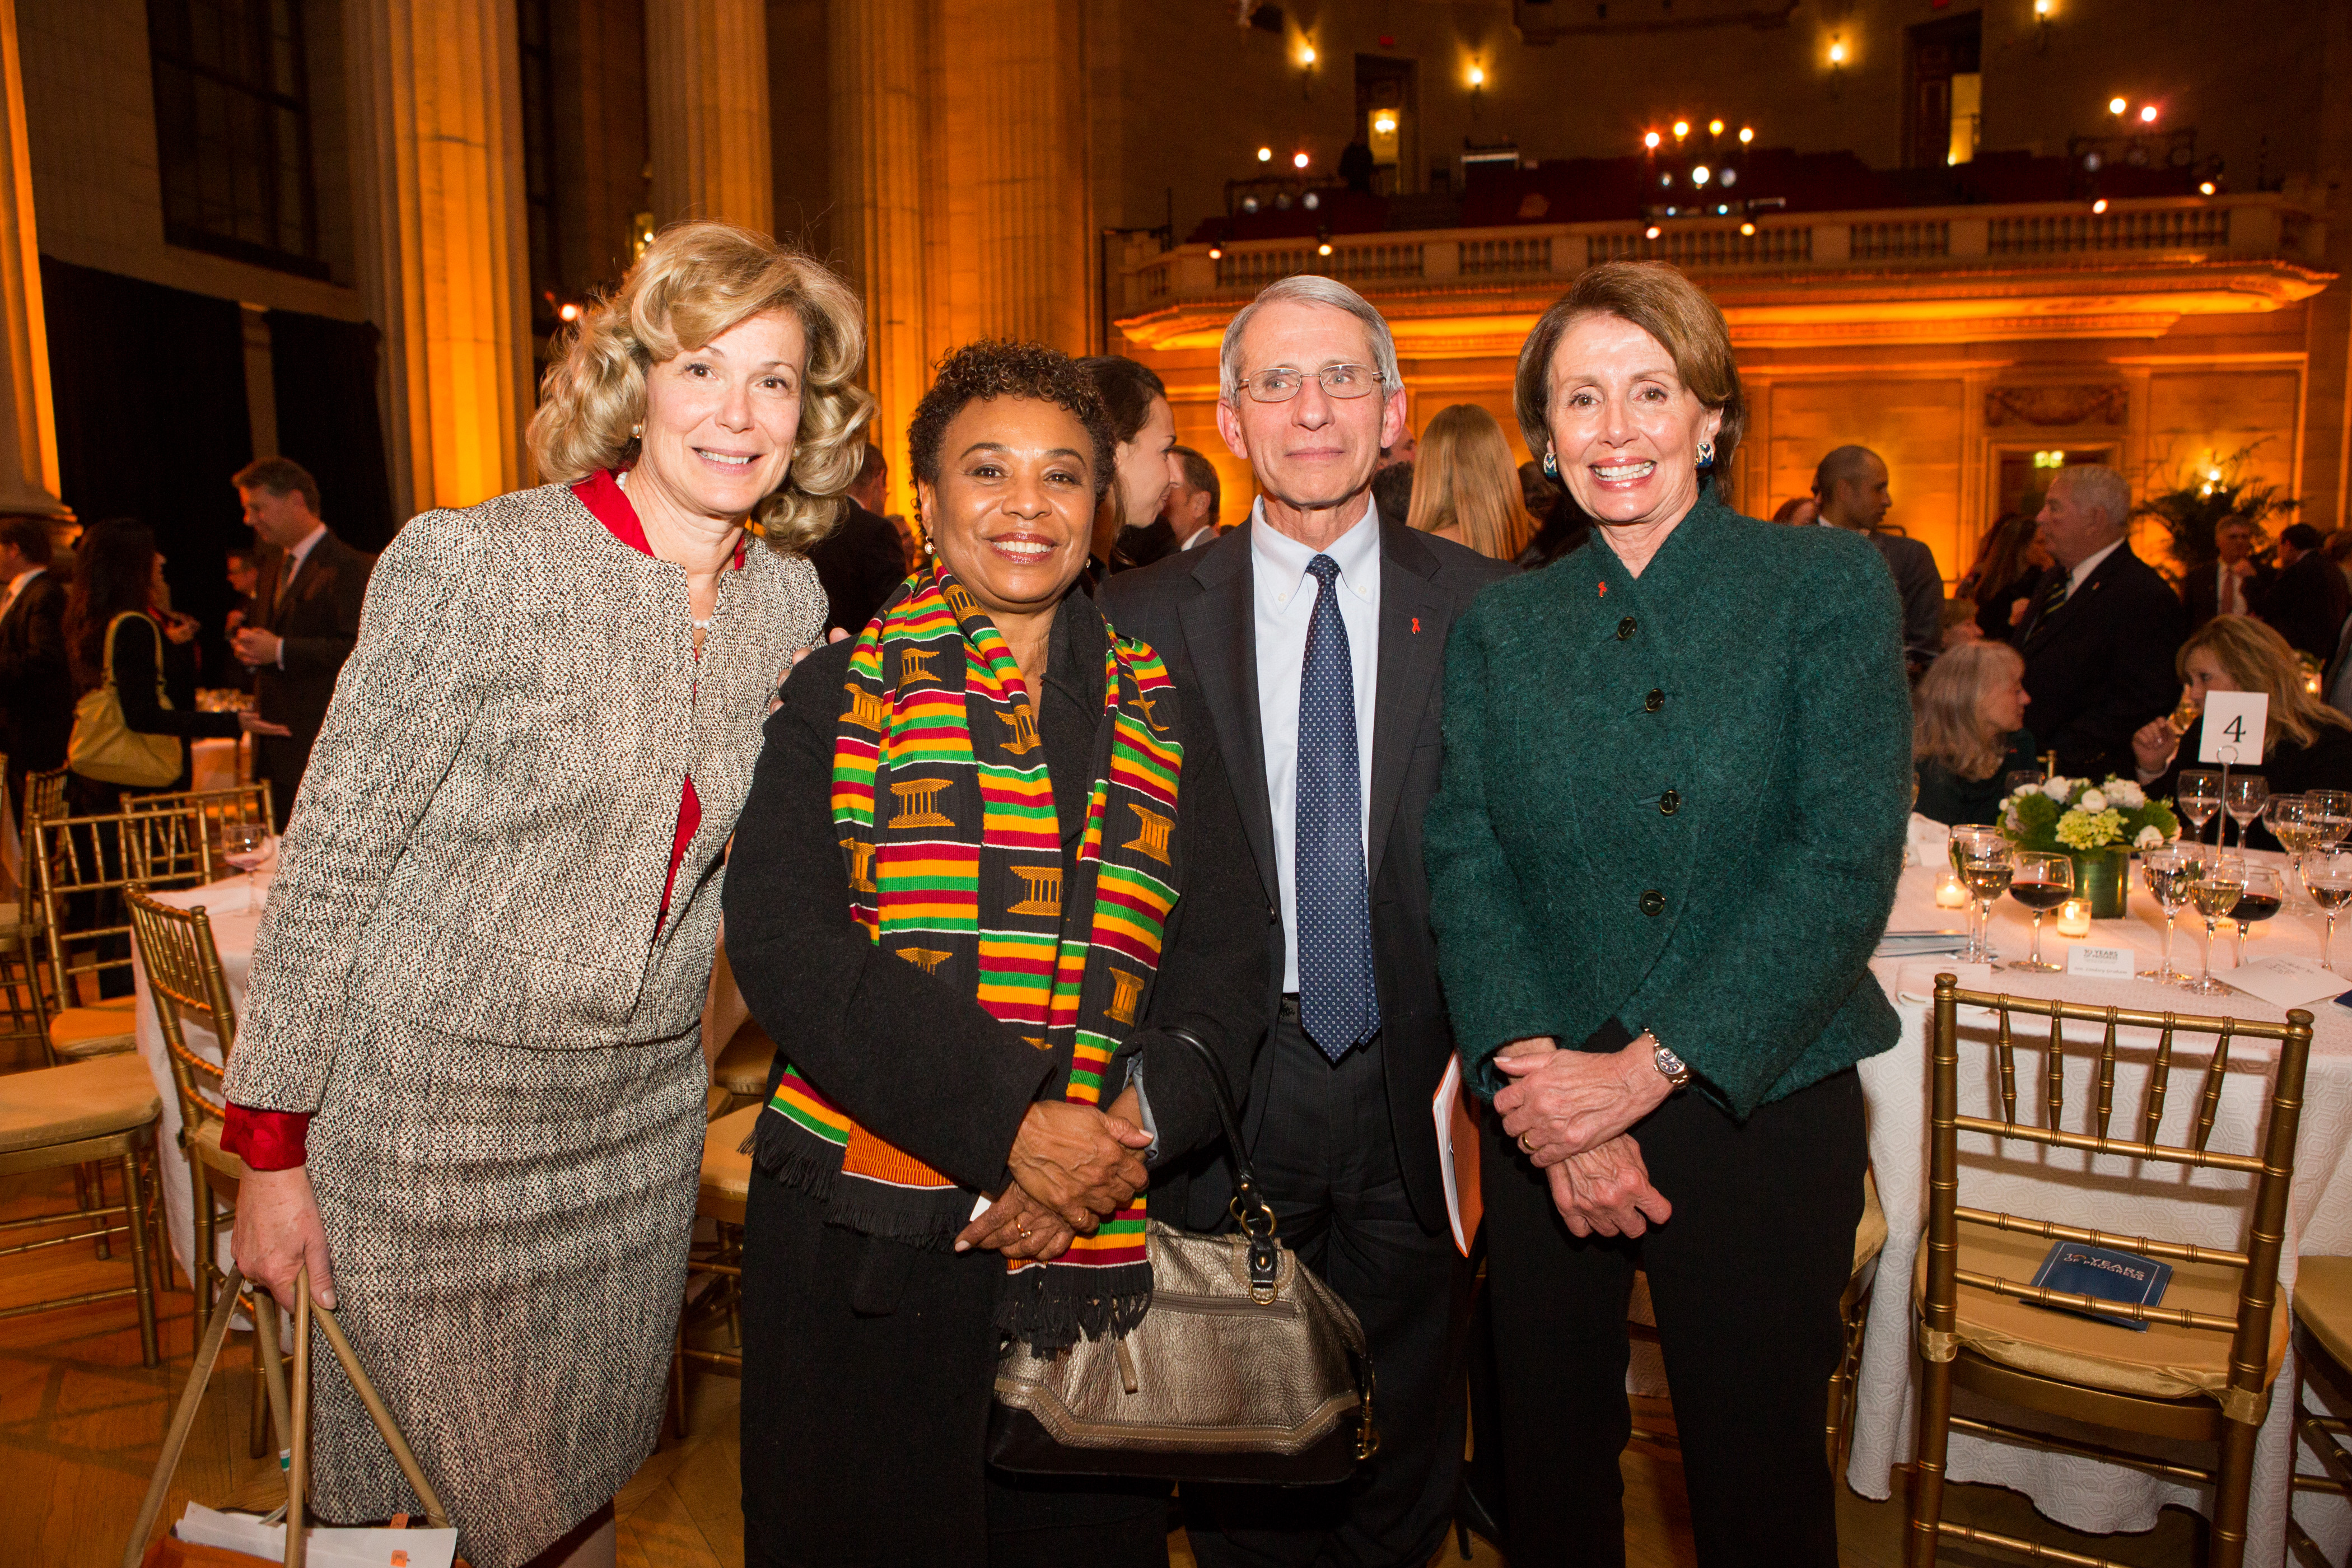 WASHINGTON, DC - DECEMBER 2: L to R, Debbie Birx, Ambassador at Large and Coordinator of US Government Activities to Combat HIV/AIDS, Rep. Barbara Lee (D-CA), Dr. Anthony Fauci, an immunologist and leading HIV/AIDS researcher, and Rep. Nancy Pelosi (D-CA), U.S. House Minority Leader, pose for a photo at the 10th anniversary leadership gala of the Friends Of The Global Fight Against AIDS, Tuberculosis and Malaria, December 2, 2014 in Washington, DC. Klein is board chair of the non-profit organization. (Photo by Allison Shelley/Getty Images for Friends of the Global Fight)